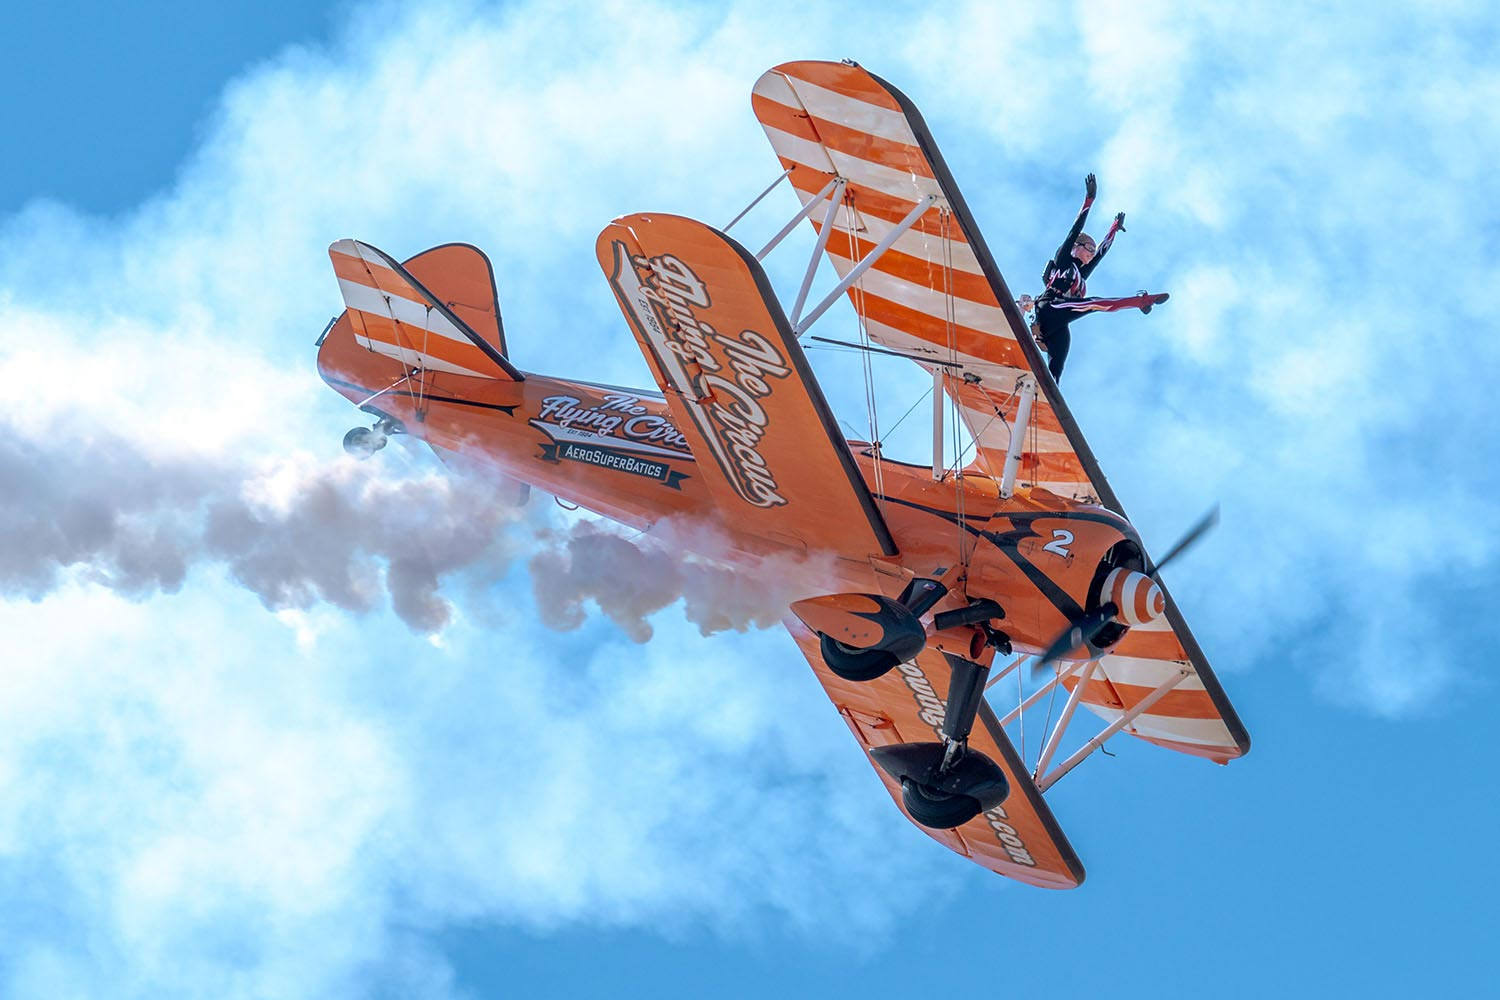 Wingwalkers photographed for Fly to the Past by Mighty, public relations agency Cheltenham and Worcester